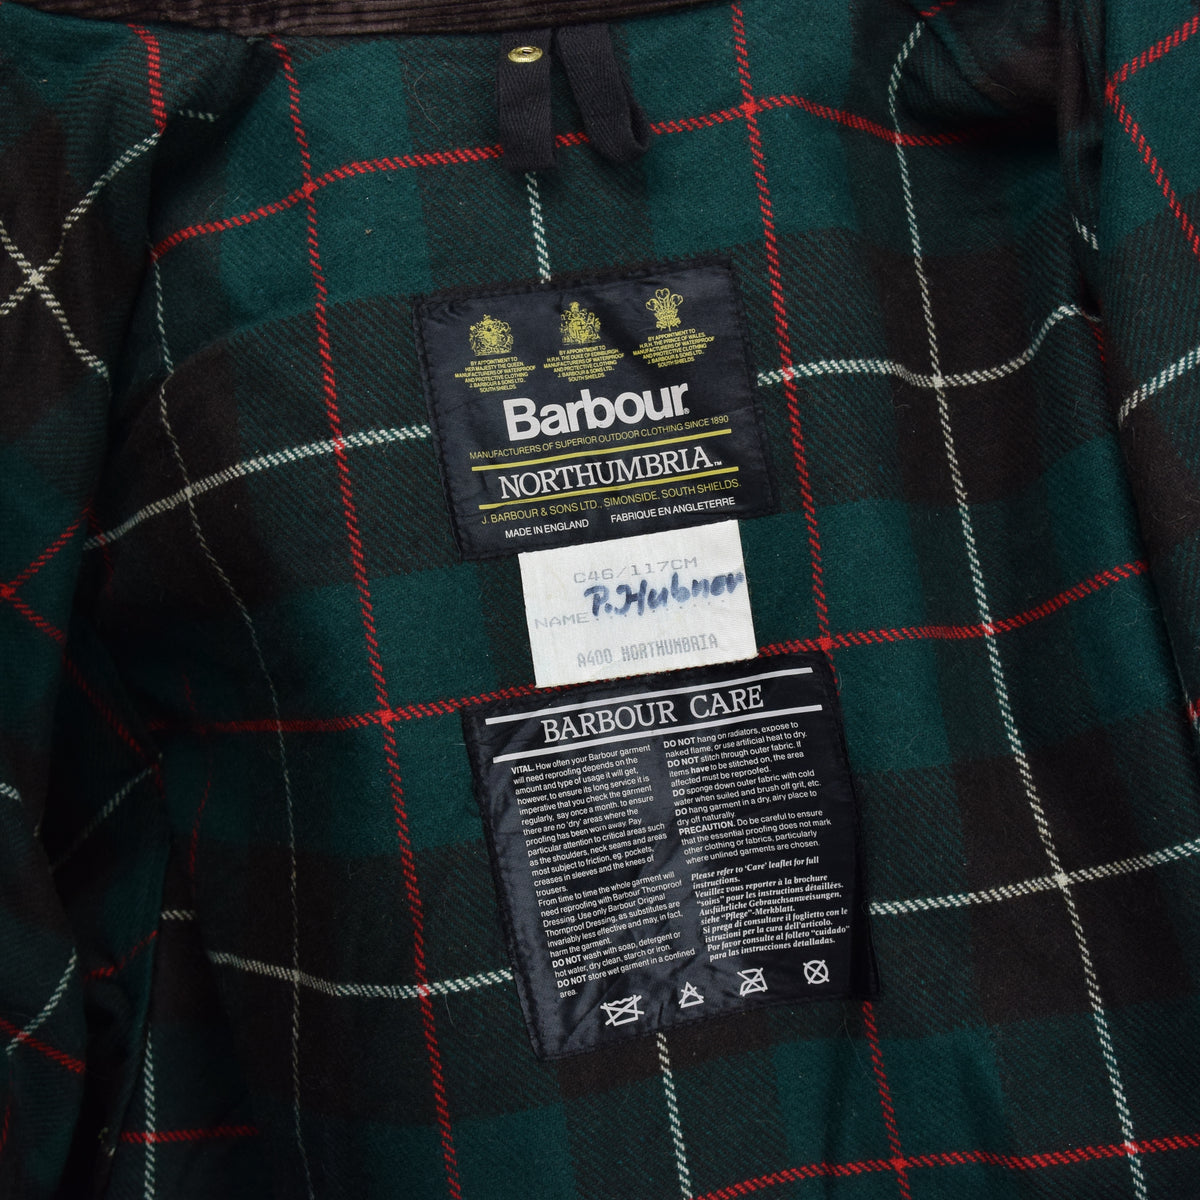 Vintage Barbour A400 Northumbria Green Wax Jacket Coat Made In England XXL label